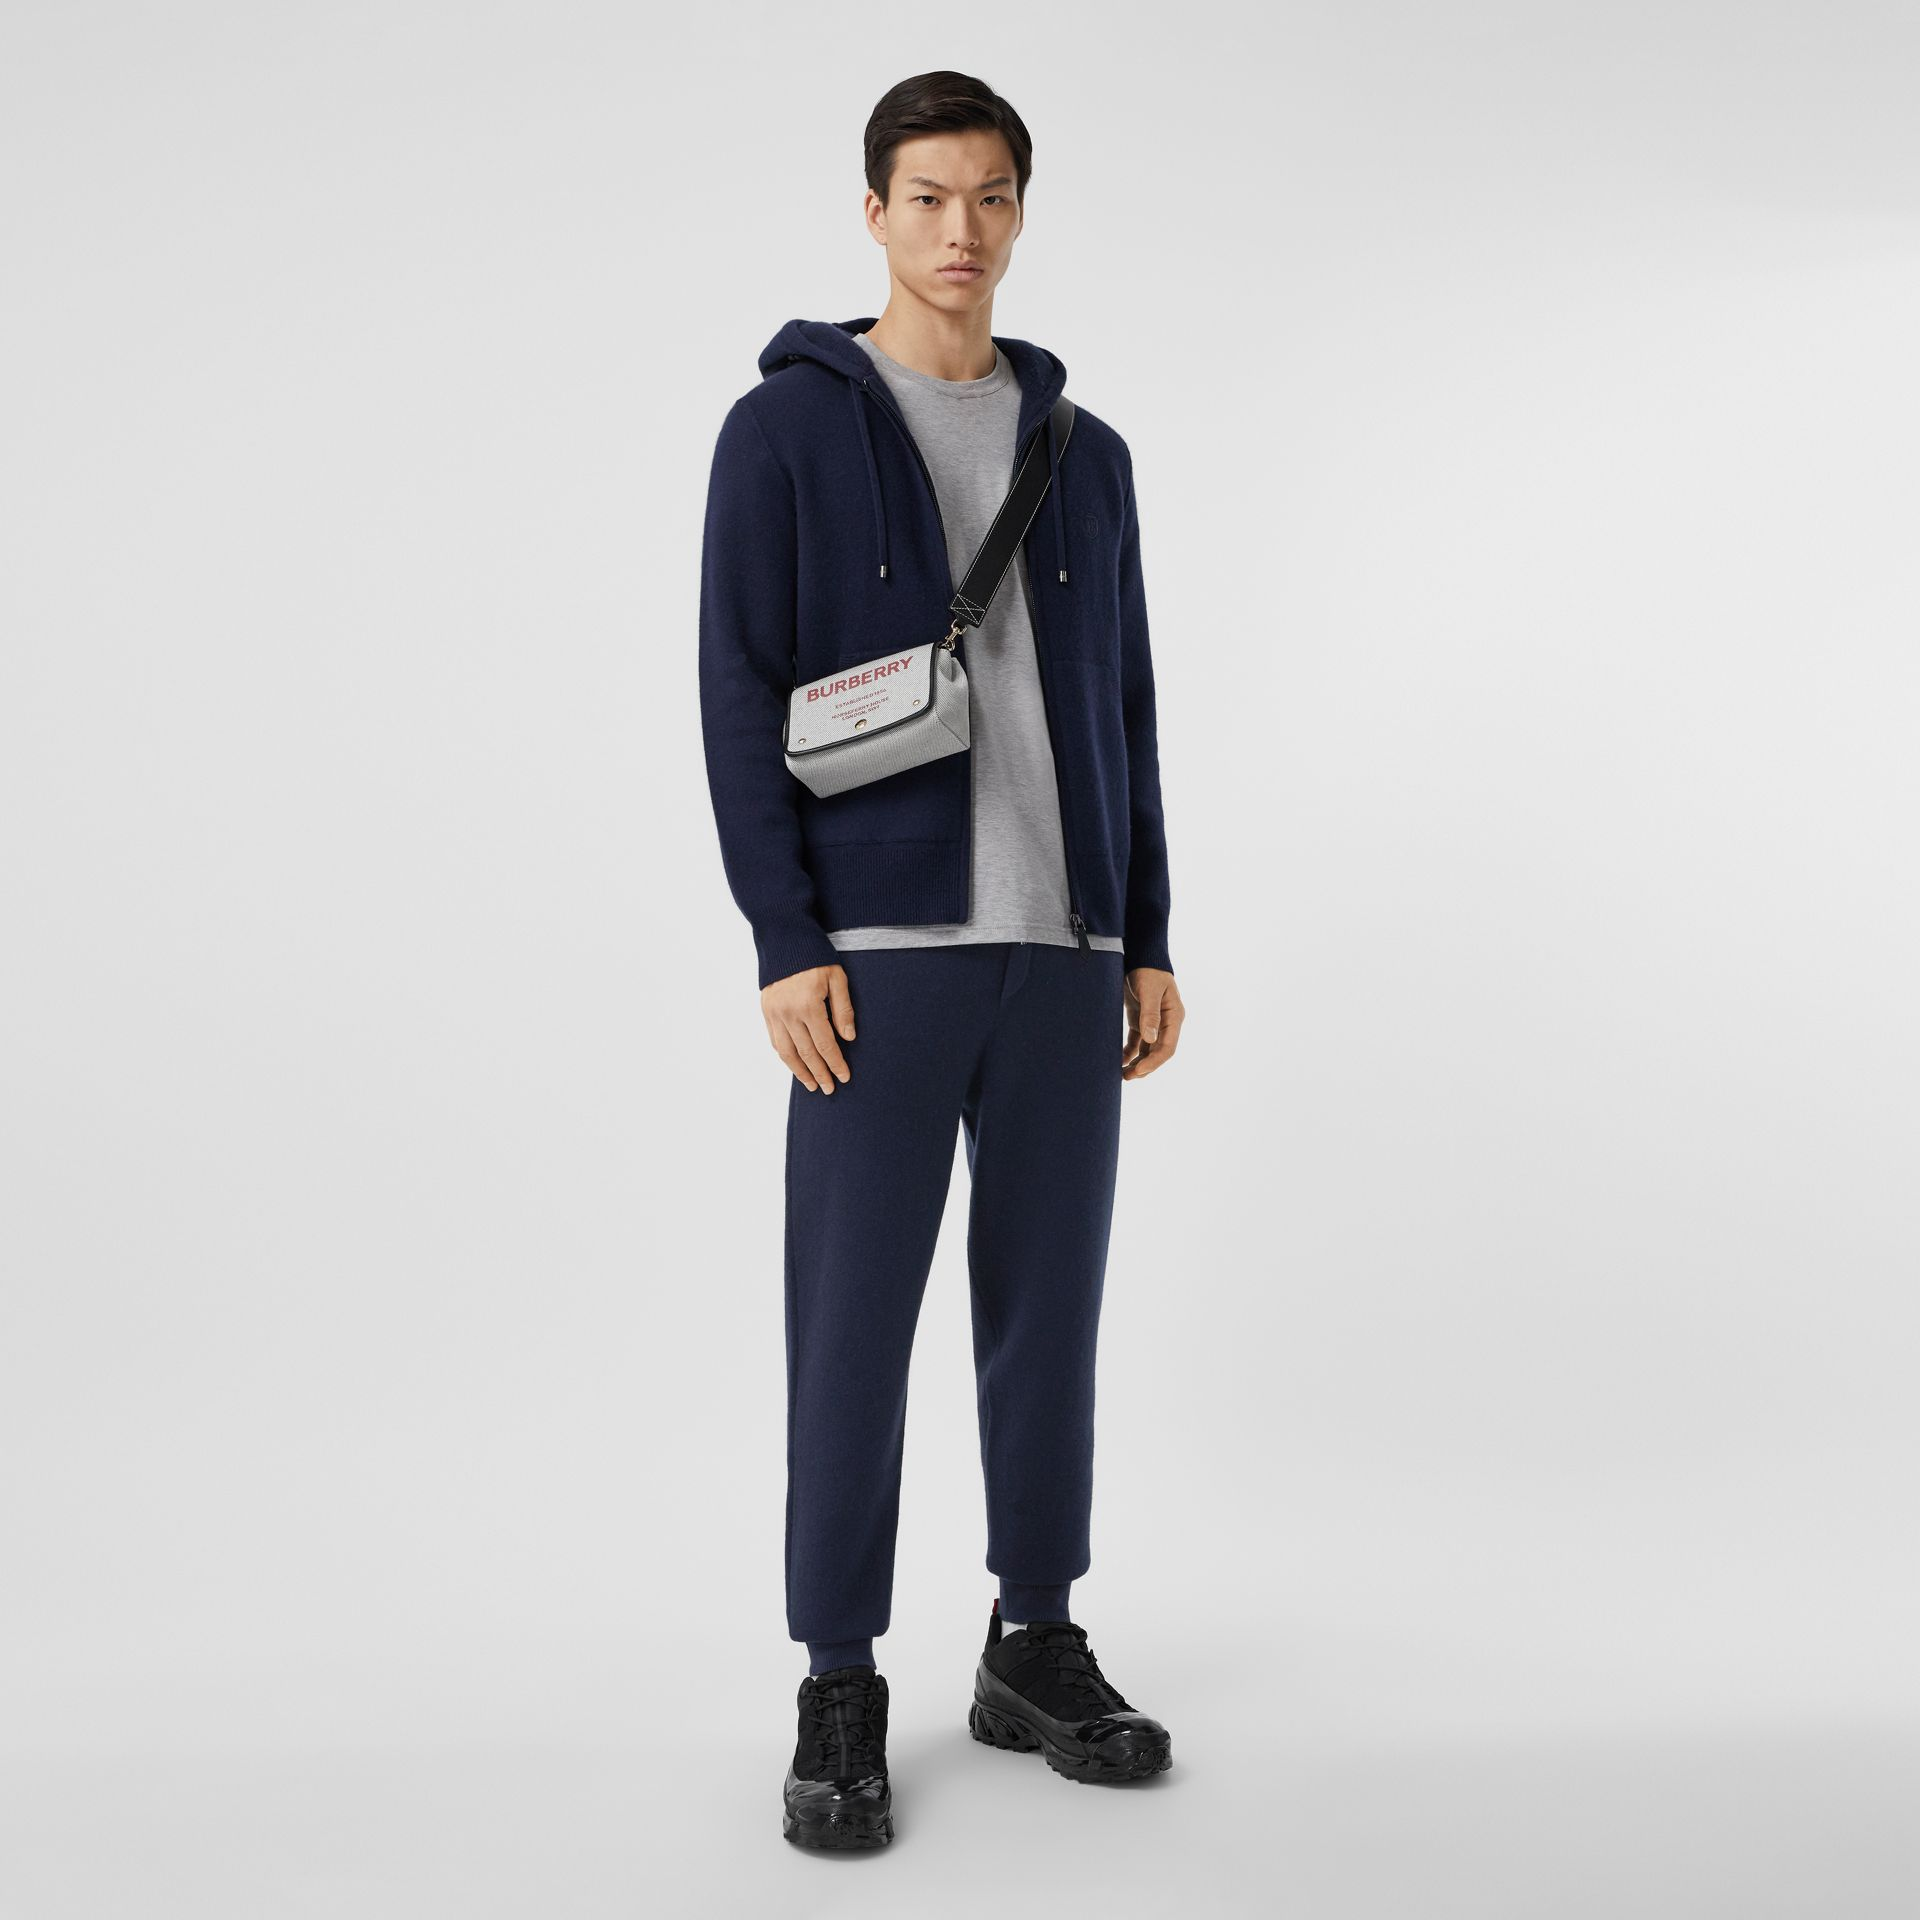 Monogram Motif Cashmere Blend Jogging Pants in Navy - Men | Burberry - gallery image 0